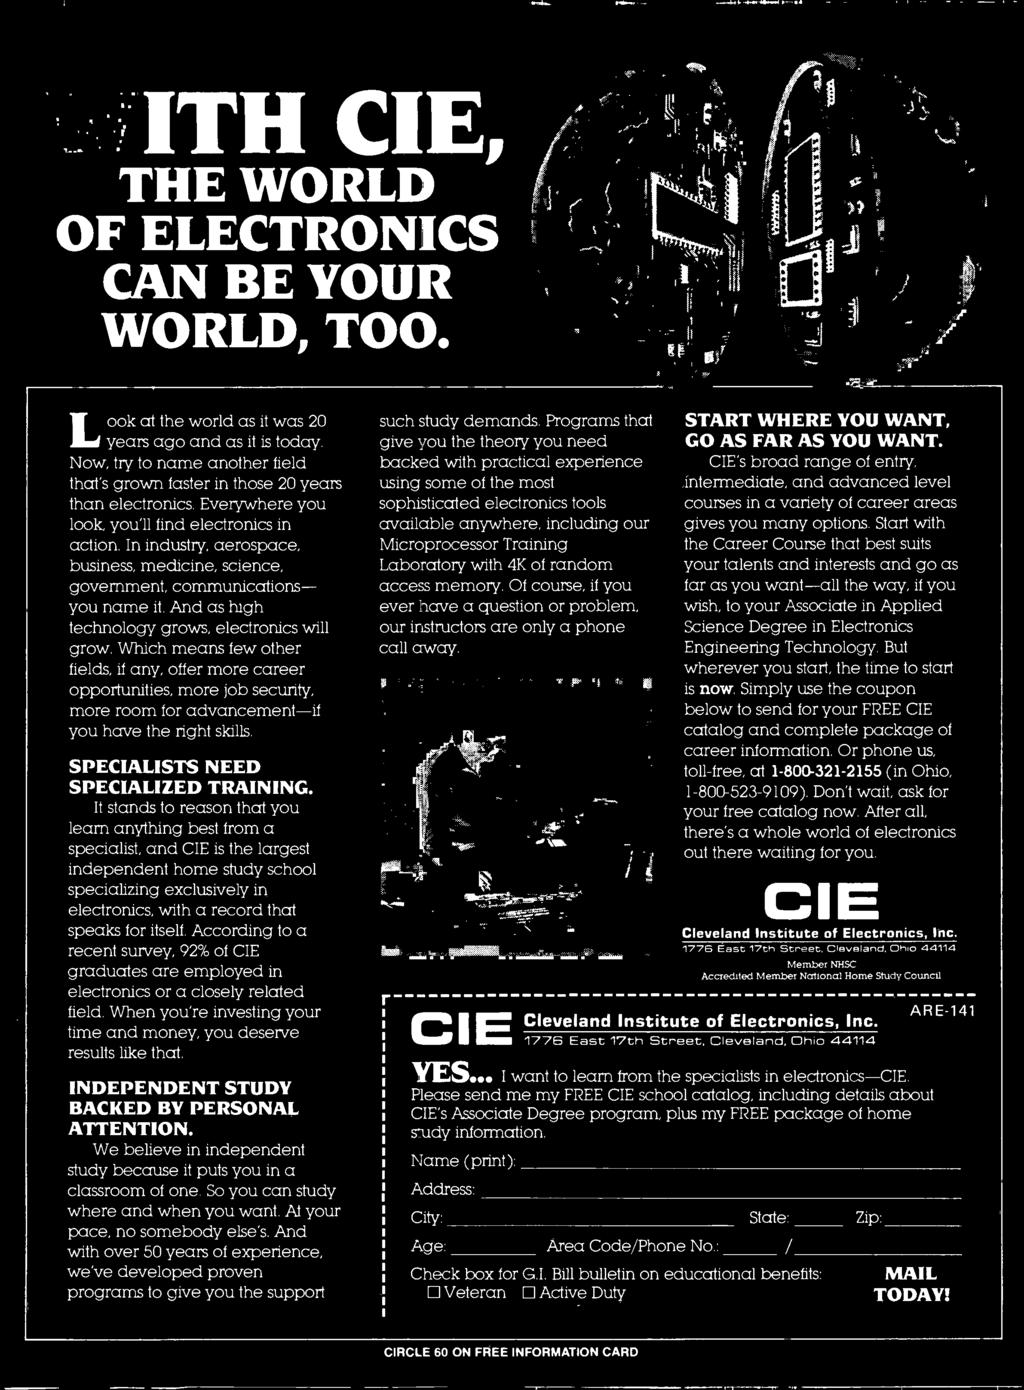 Ectre Build This Spectrum Monitor Op Ampinstr Architectures The Electronic Circuitscom Mixed Circuits Delabs Schematics In Industry Aerospace Business Medicine Science Government Communicationsyou Name It